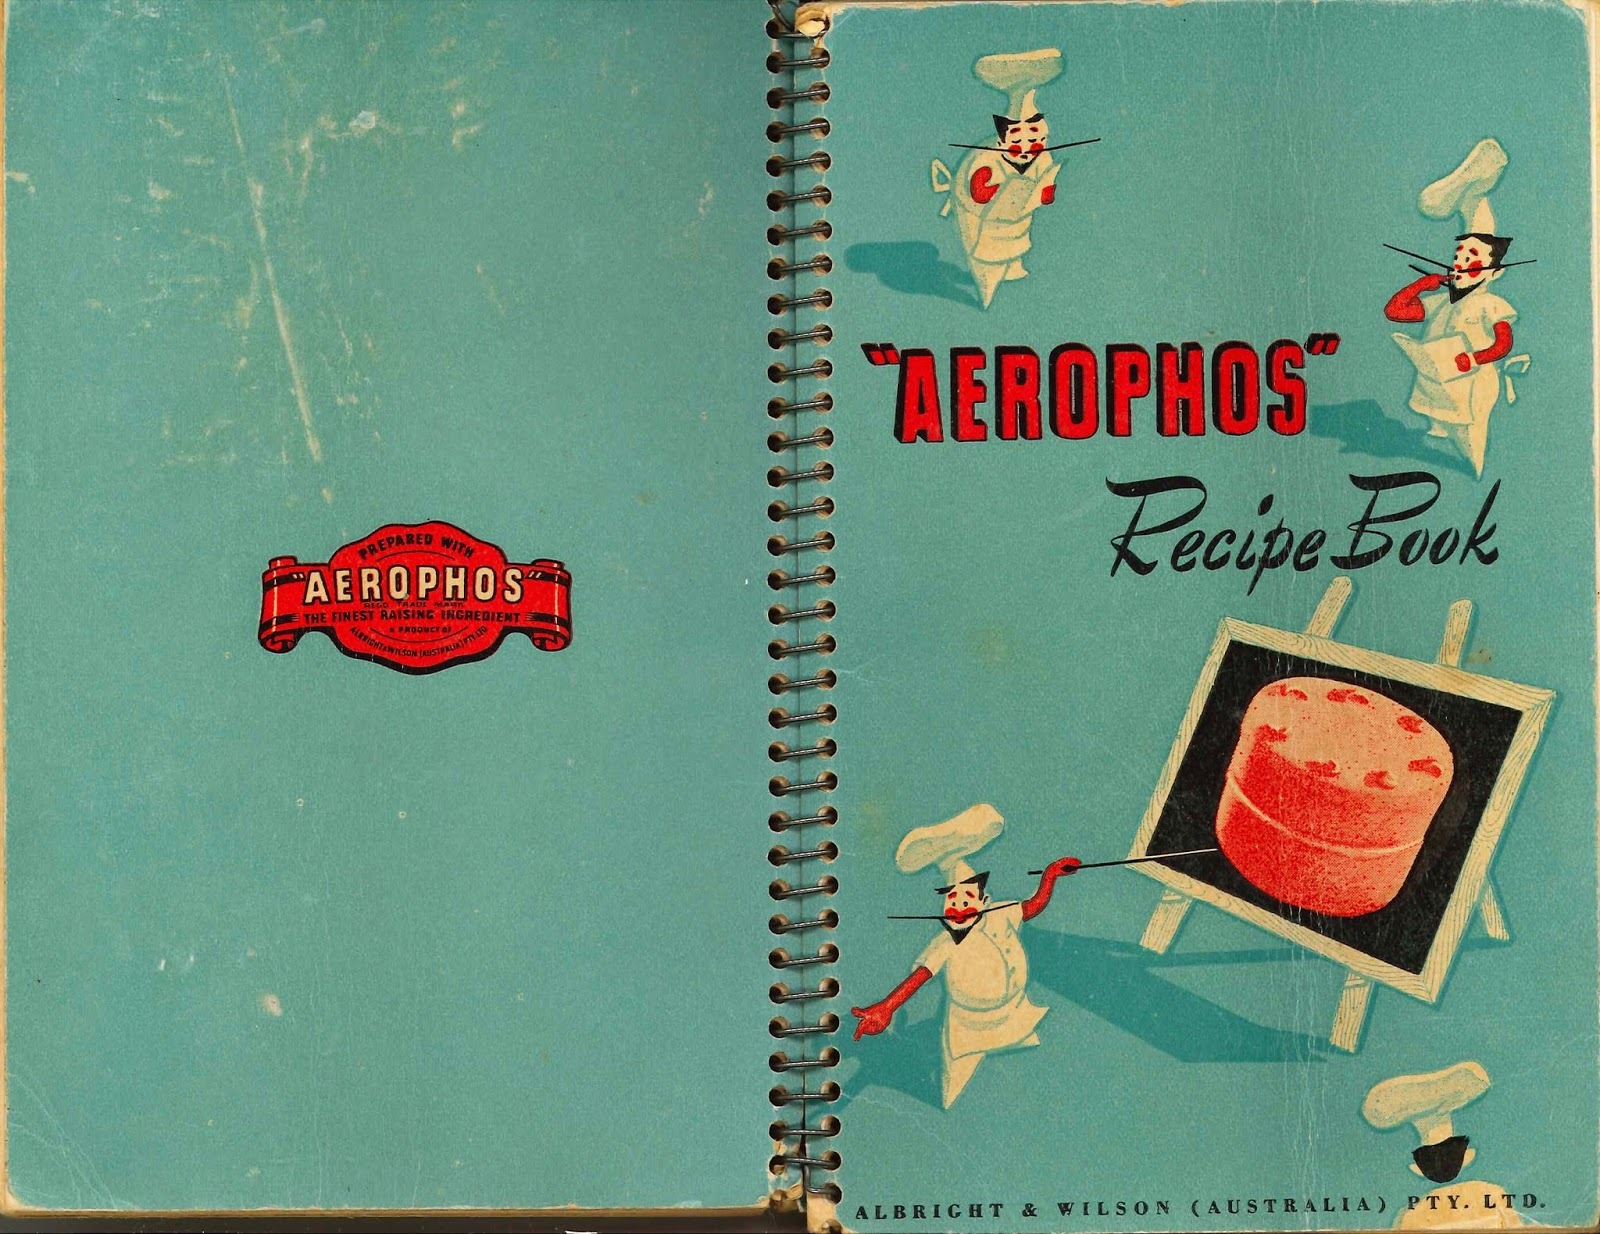 ※ AEROPHOS Recipe Book 1951 VINTAGE COOKBOOK (scans)